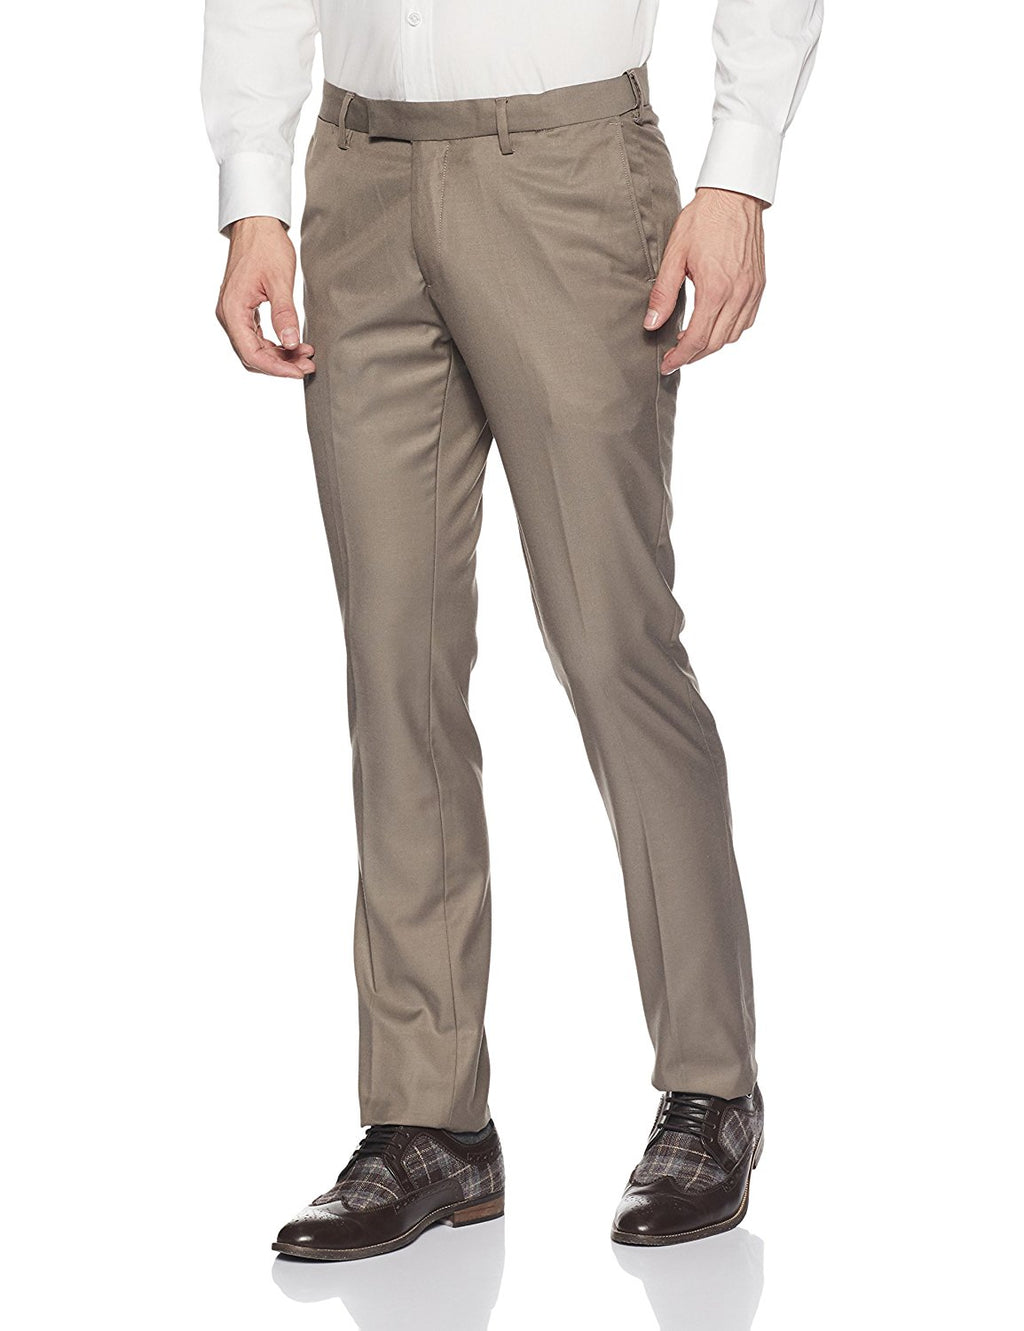 TrendSetter India Elite Men's Trouser- Golden Brown (Premium Edition)